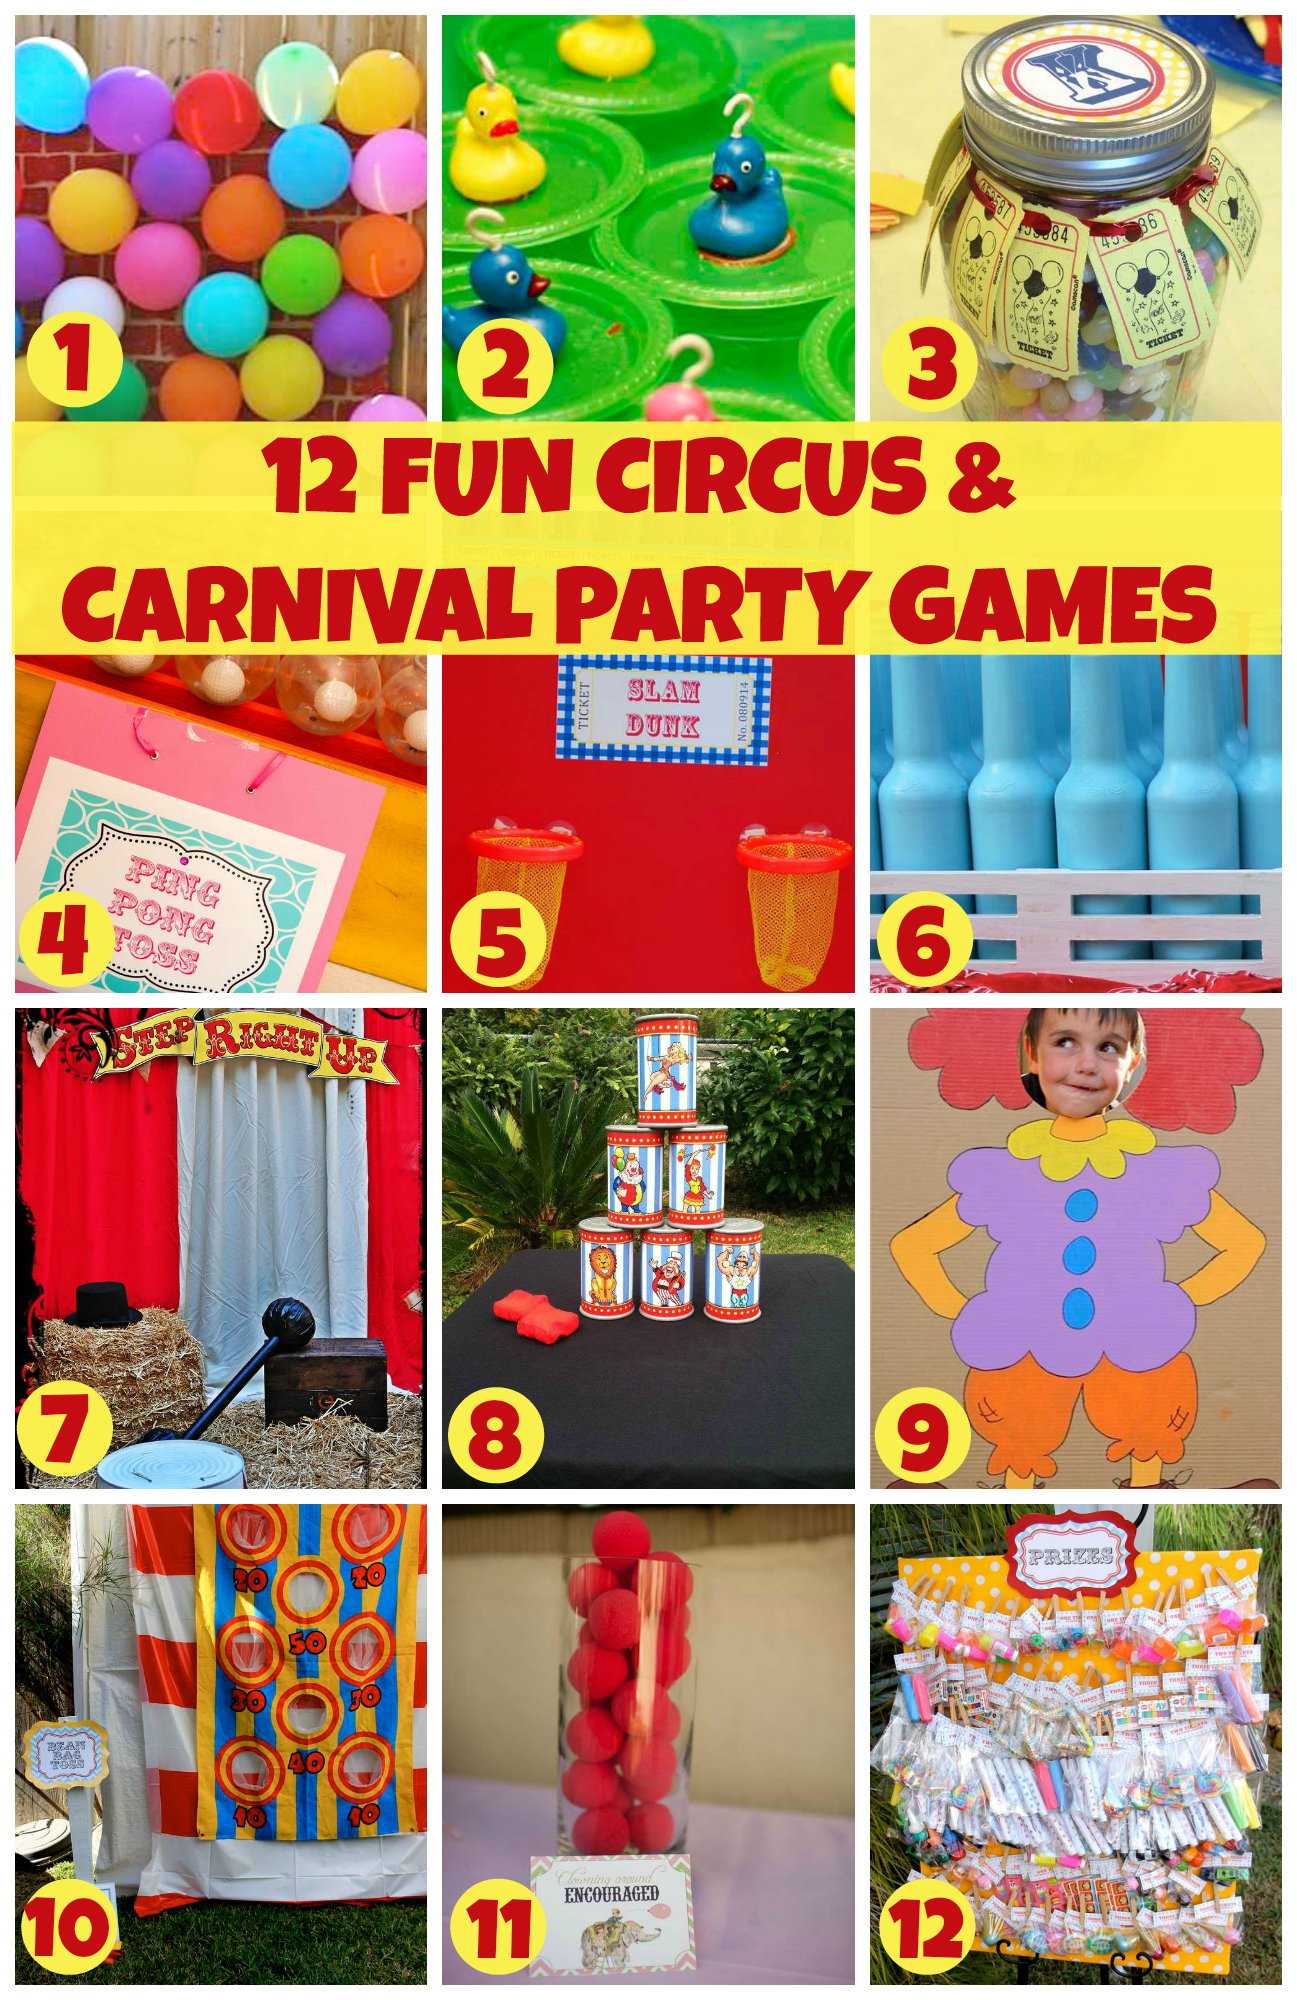 Circus party ideas for adults